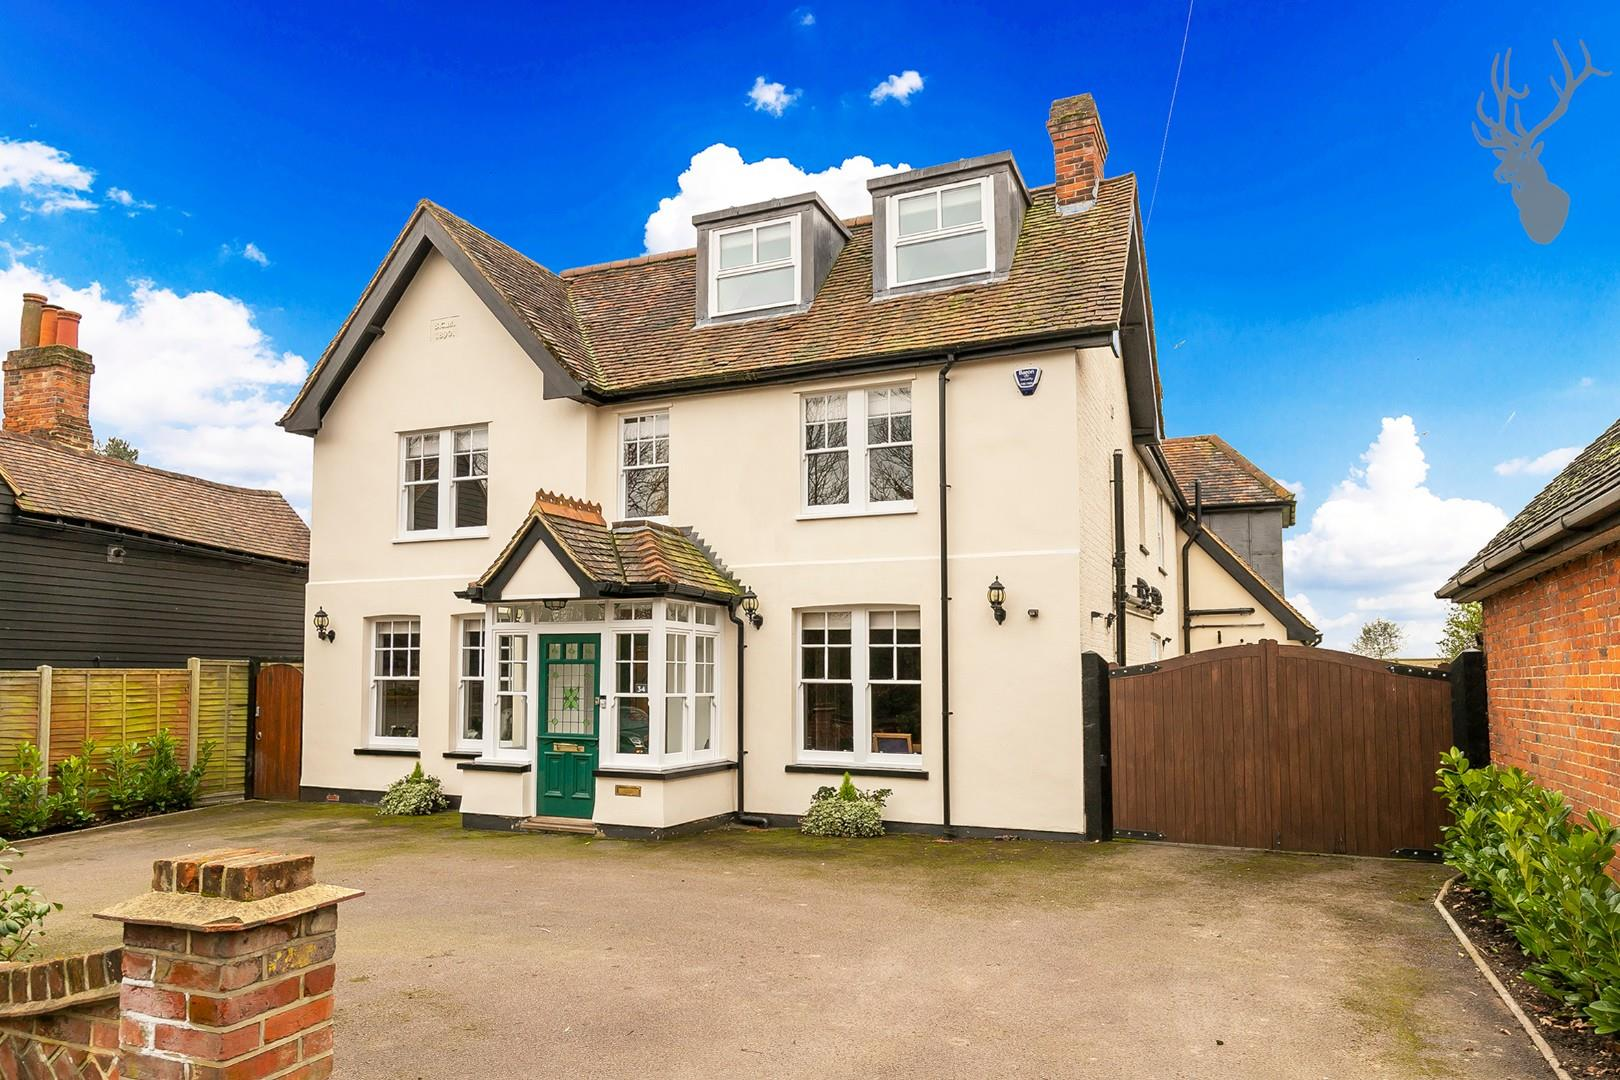 Coopersale Street  Epping  CM16